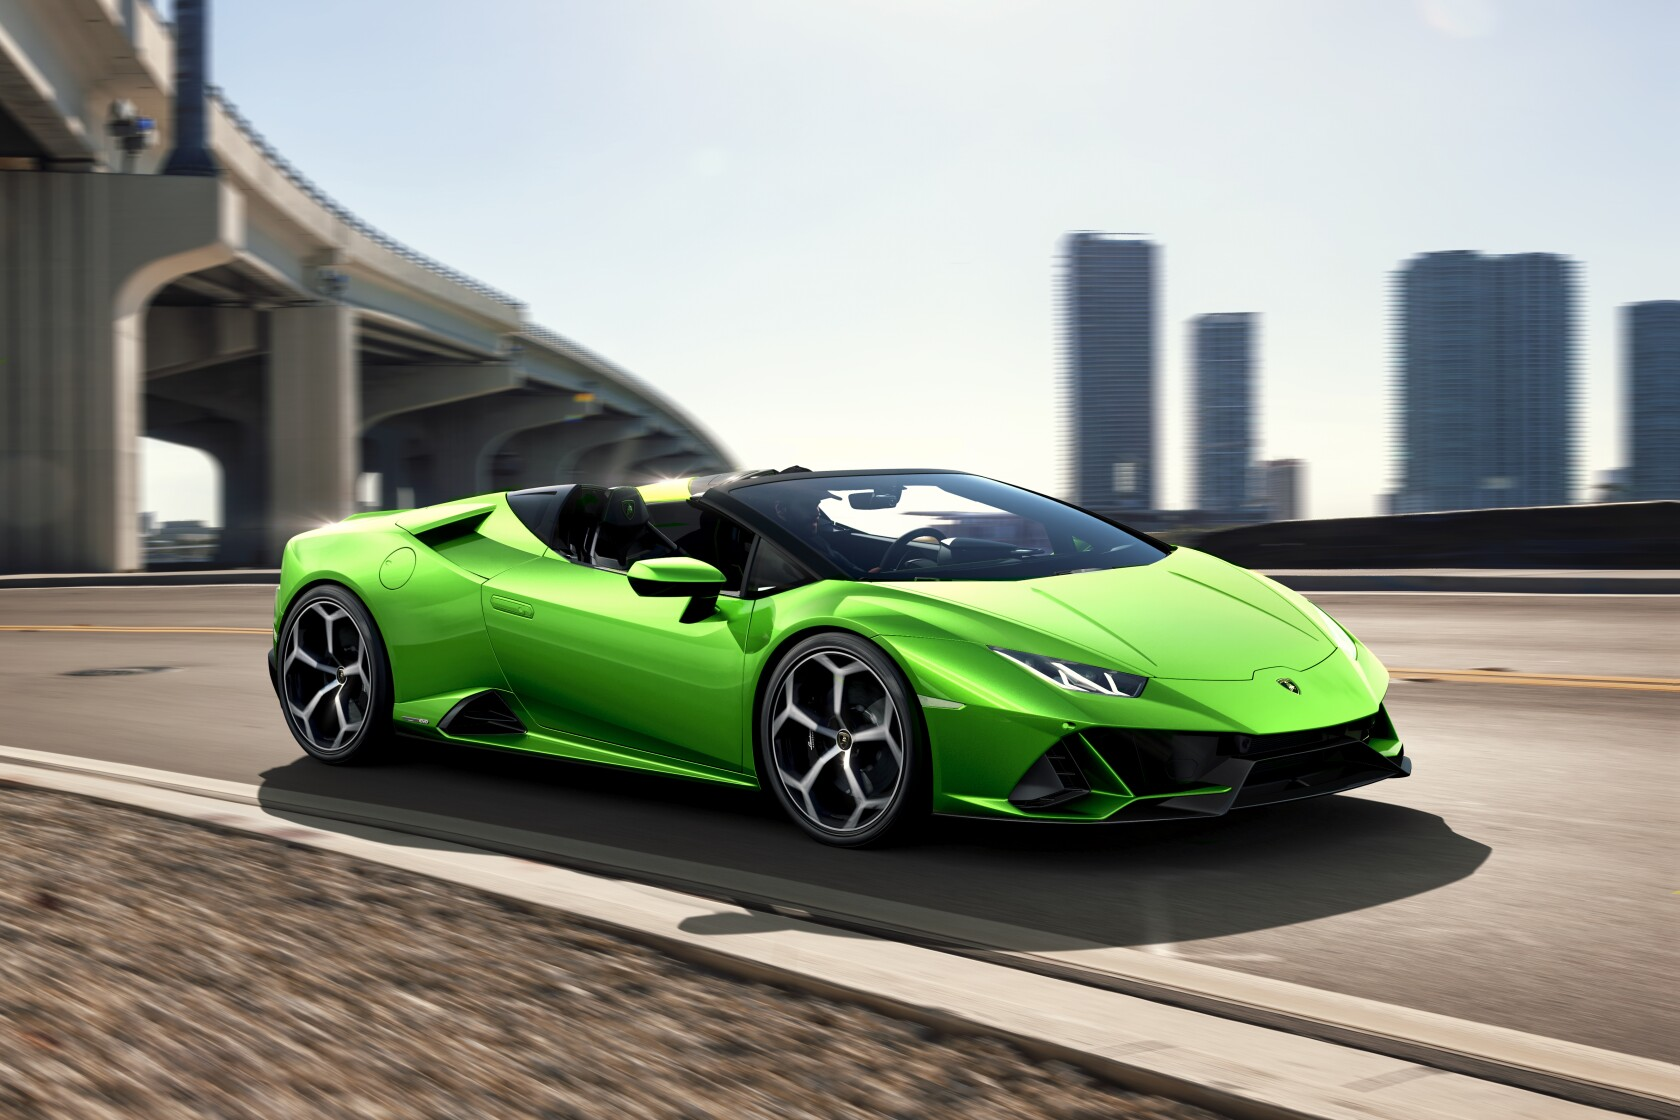 Lamborghini's 2020 Huracan EVO is a hell of a ride, but maybe not a daily driver